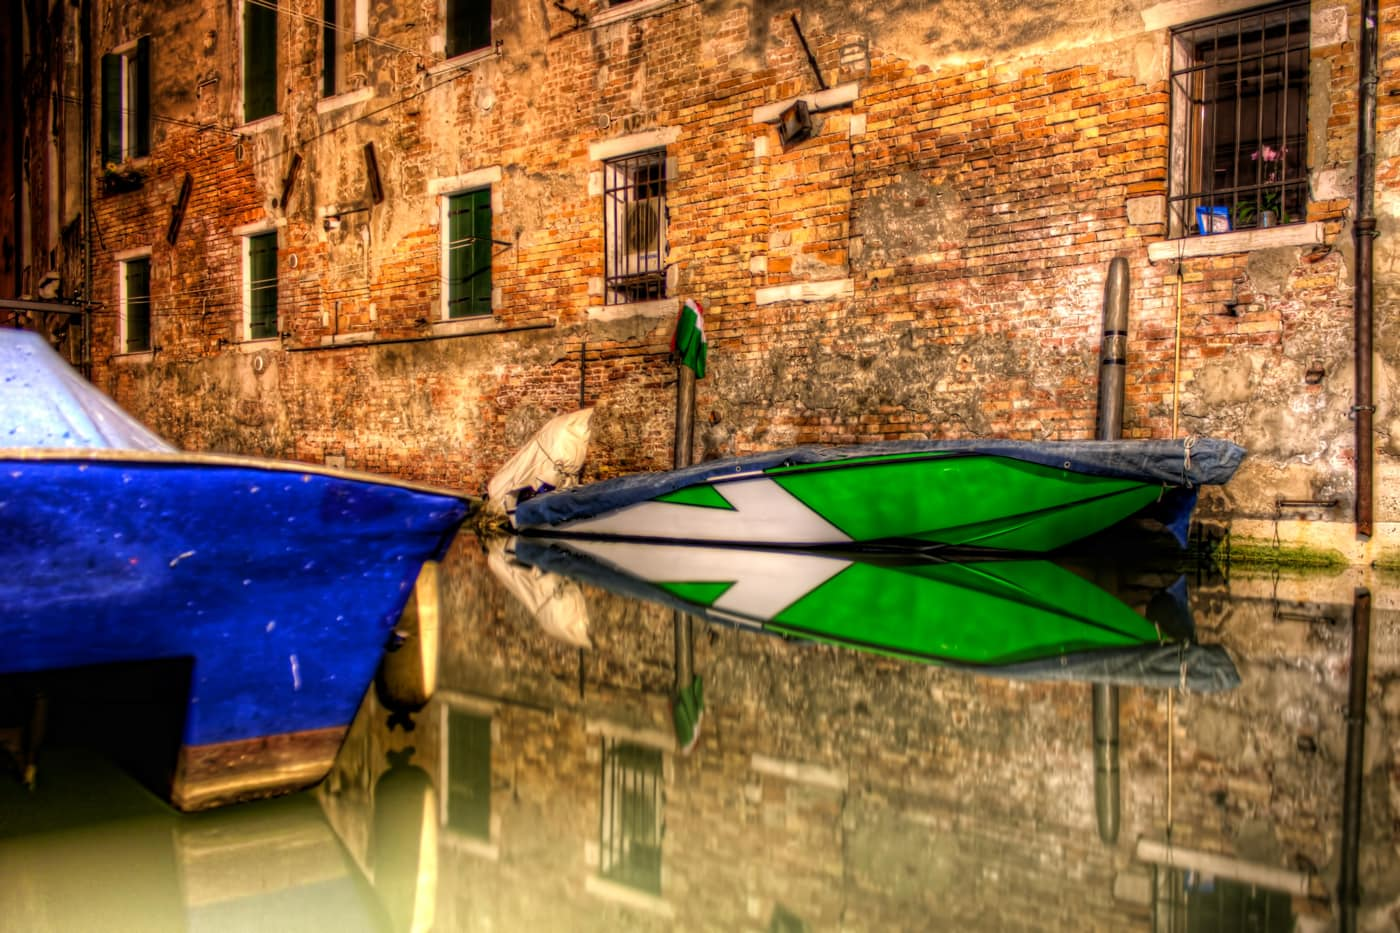 venice italy speed boats - photo#46